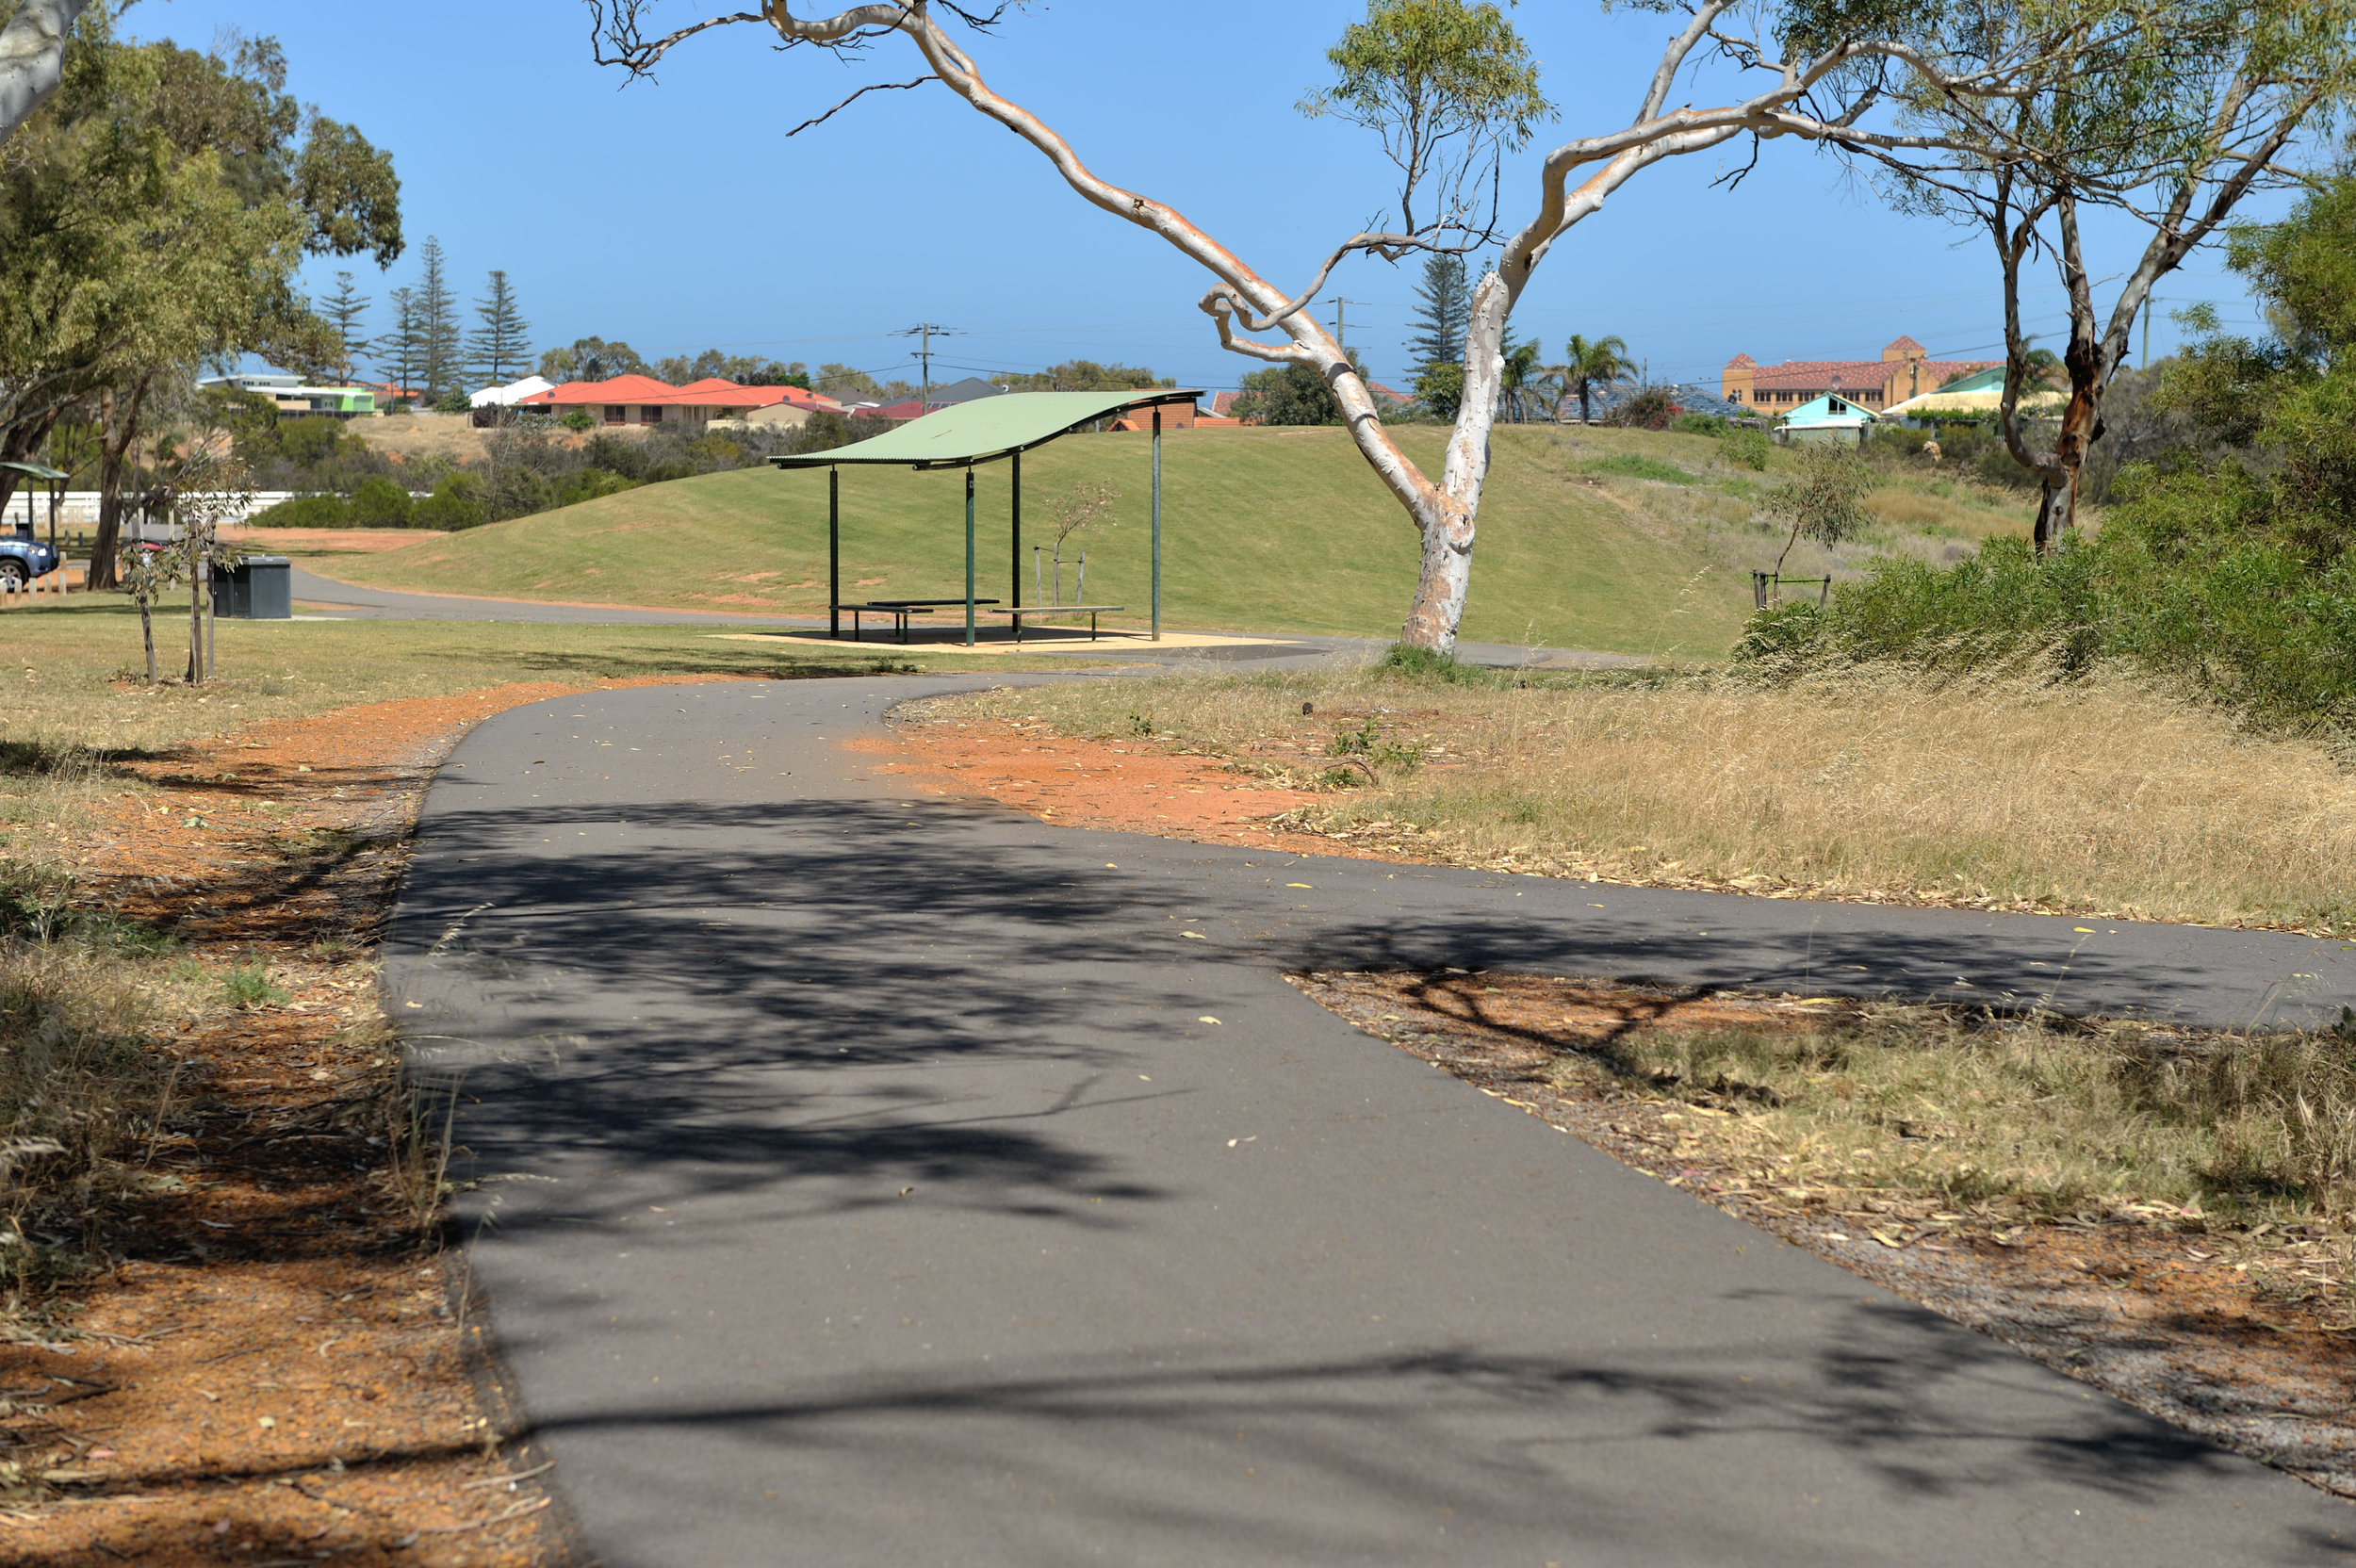 New shared cycle paths along the NWCH will connect to existing paths in the Chapman River Regional Park.